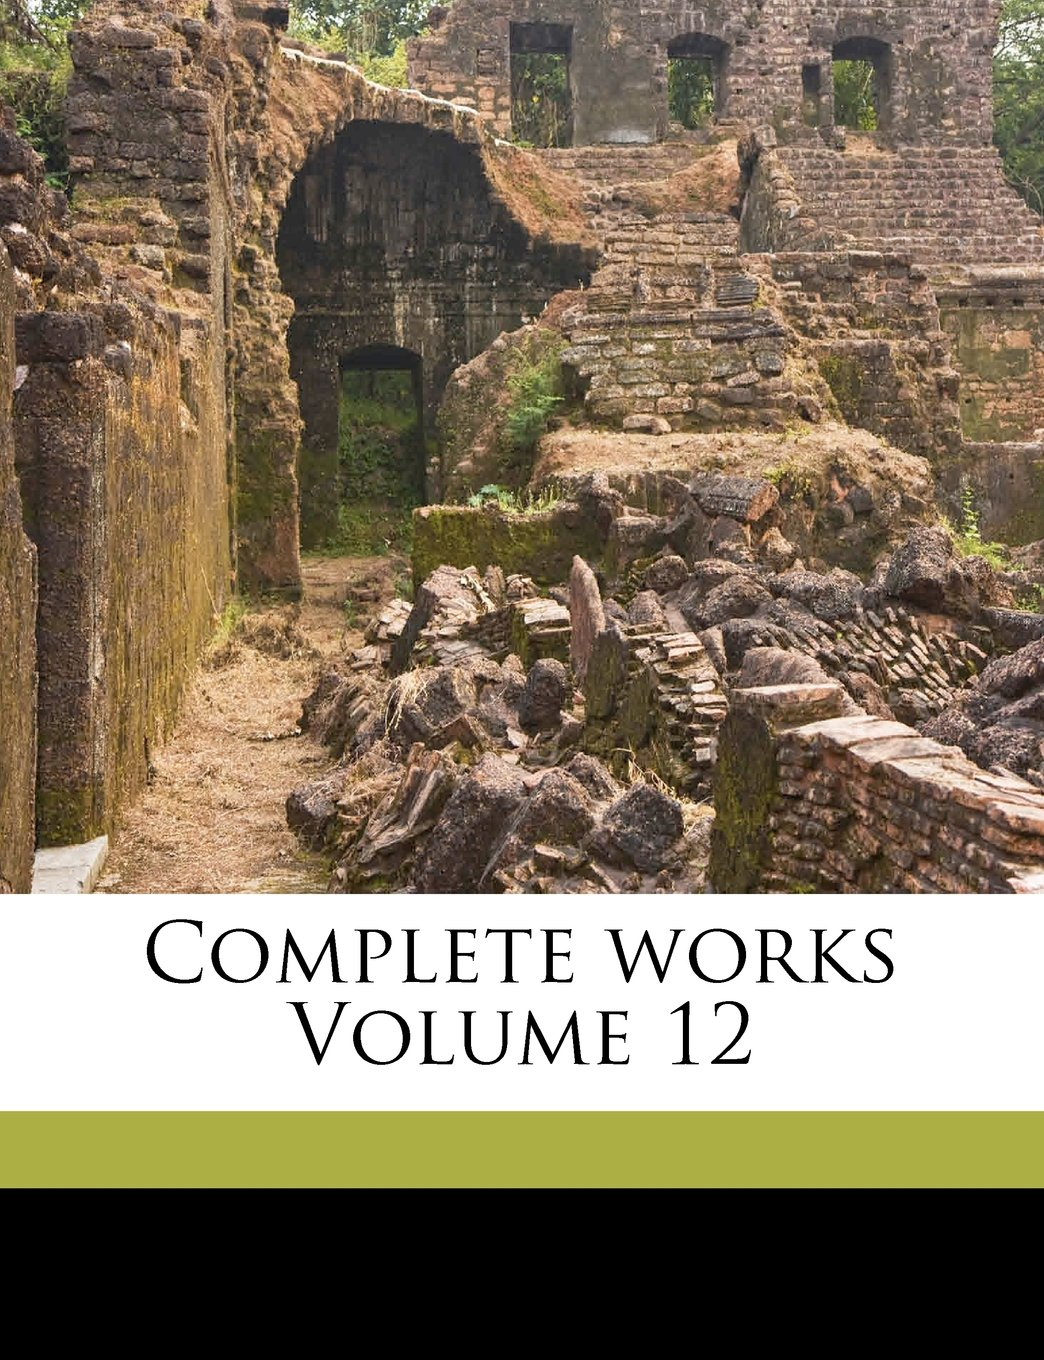 Complete works Volume 12 ebook